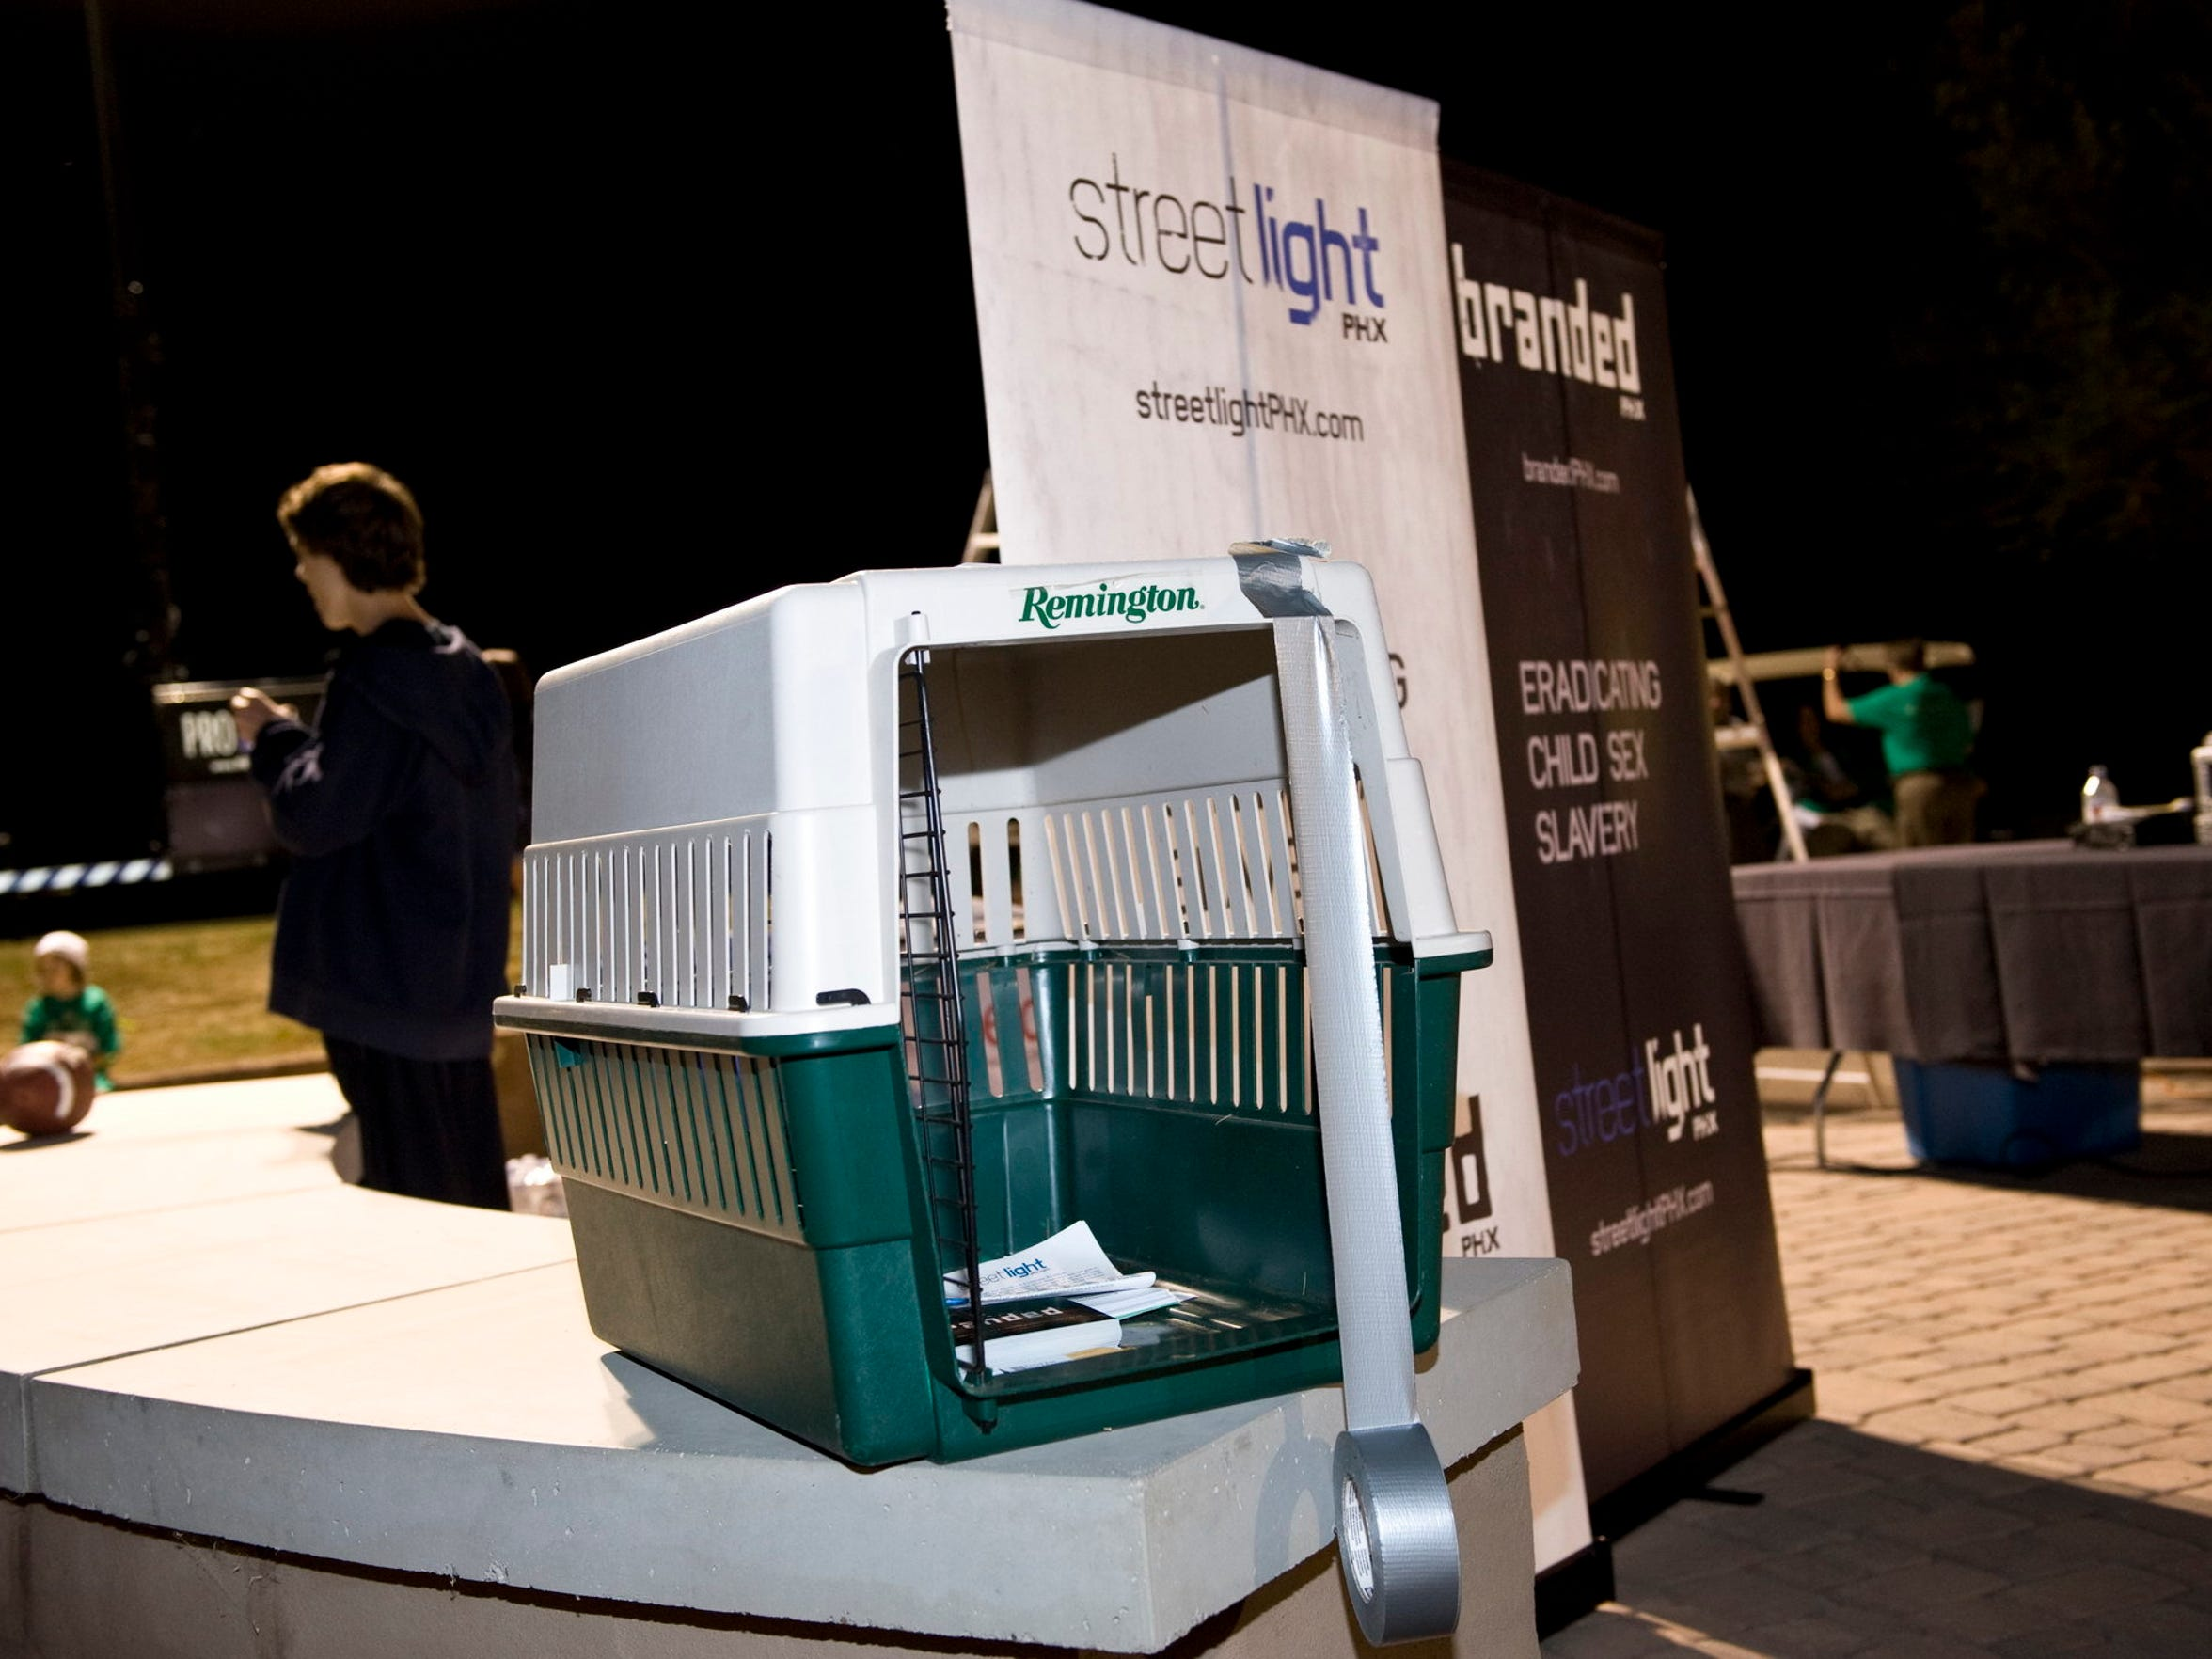 Peggy Bilsten would carry a dog crate to help spread